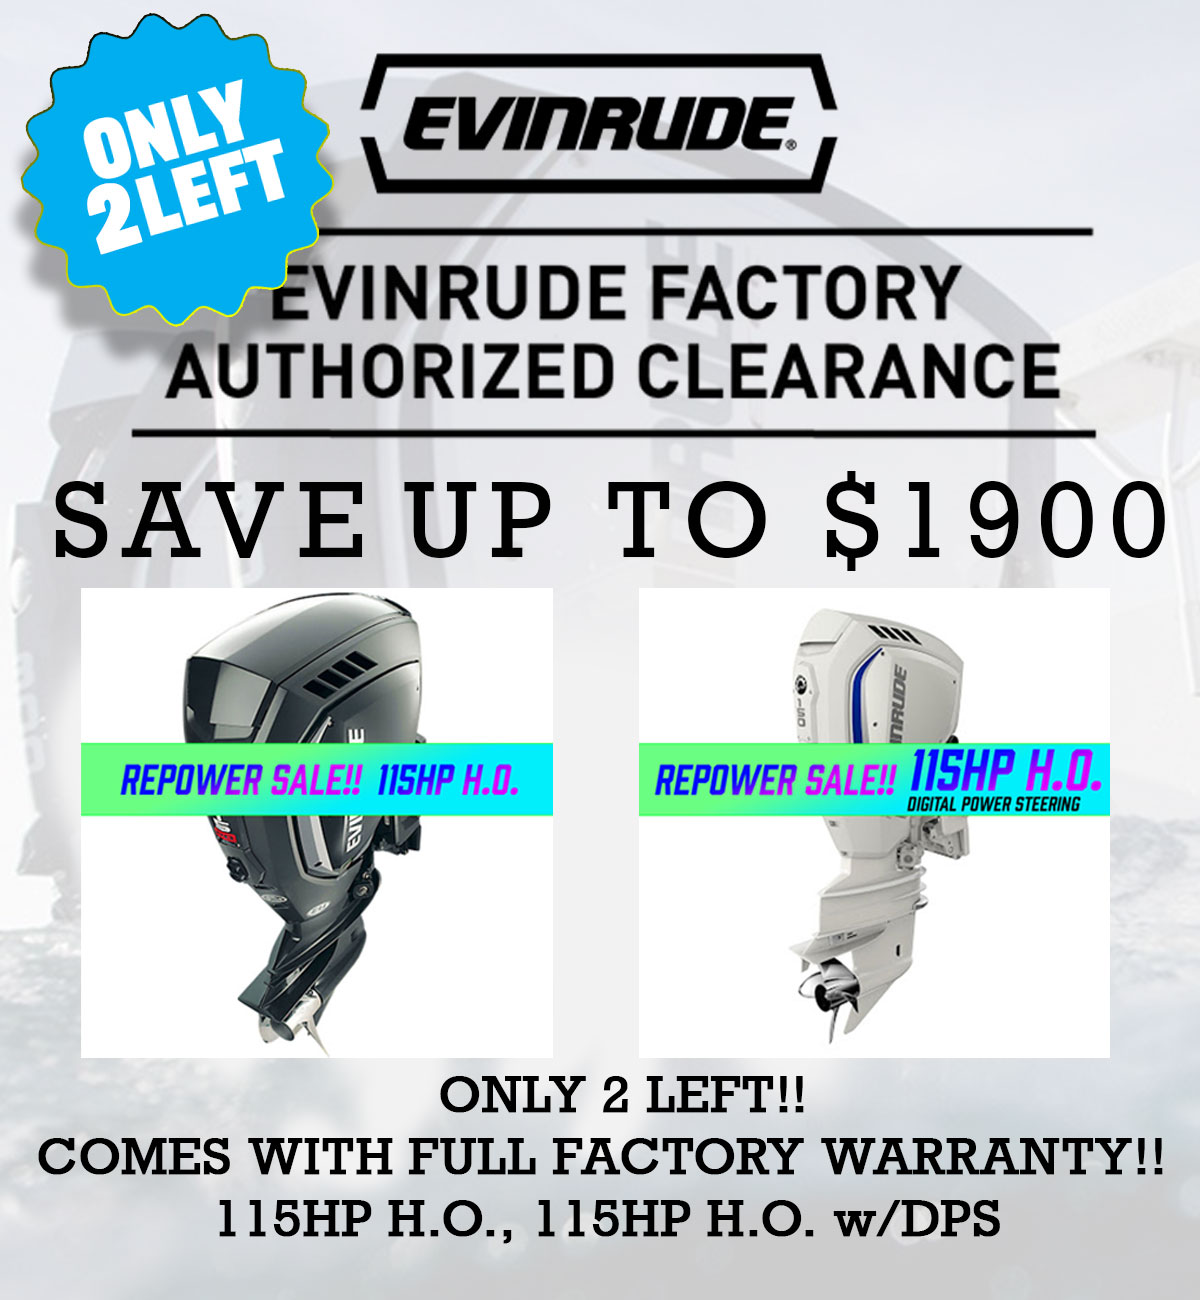 Evinrude Factory Authorized Clearance